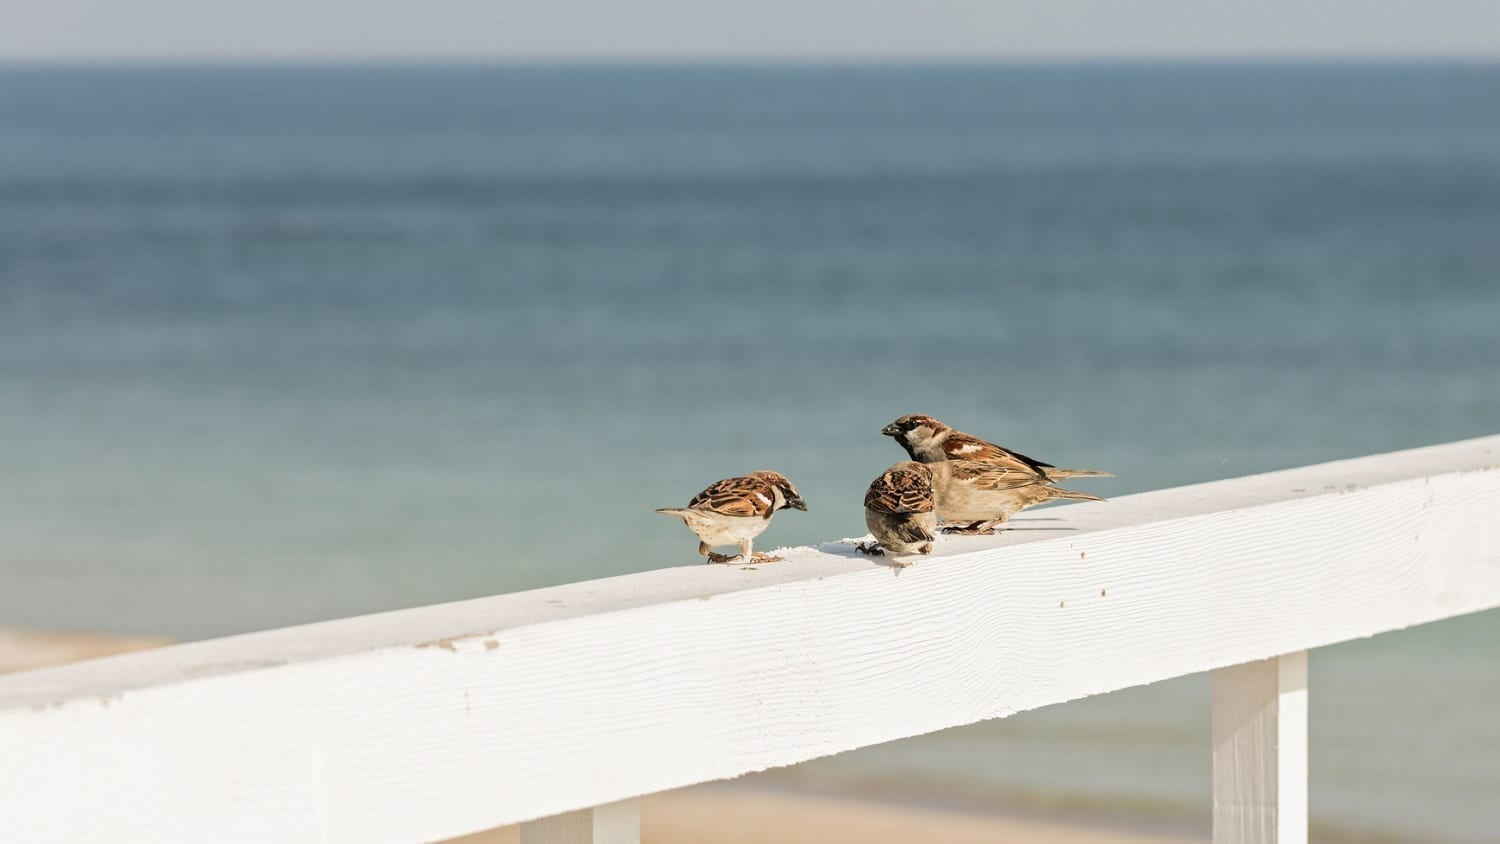 Sparrows on a rail near the ocean: ID 89586386 © Oleh29photo